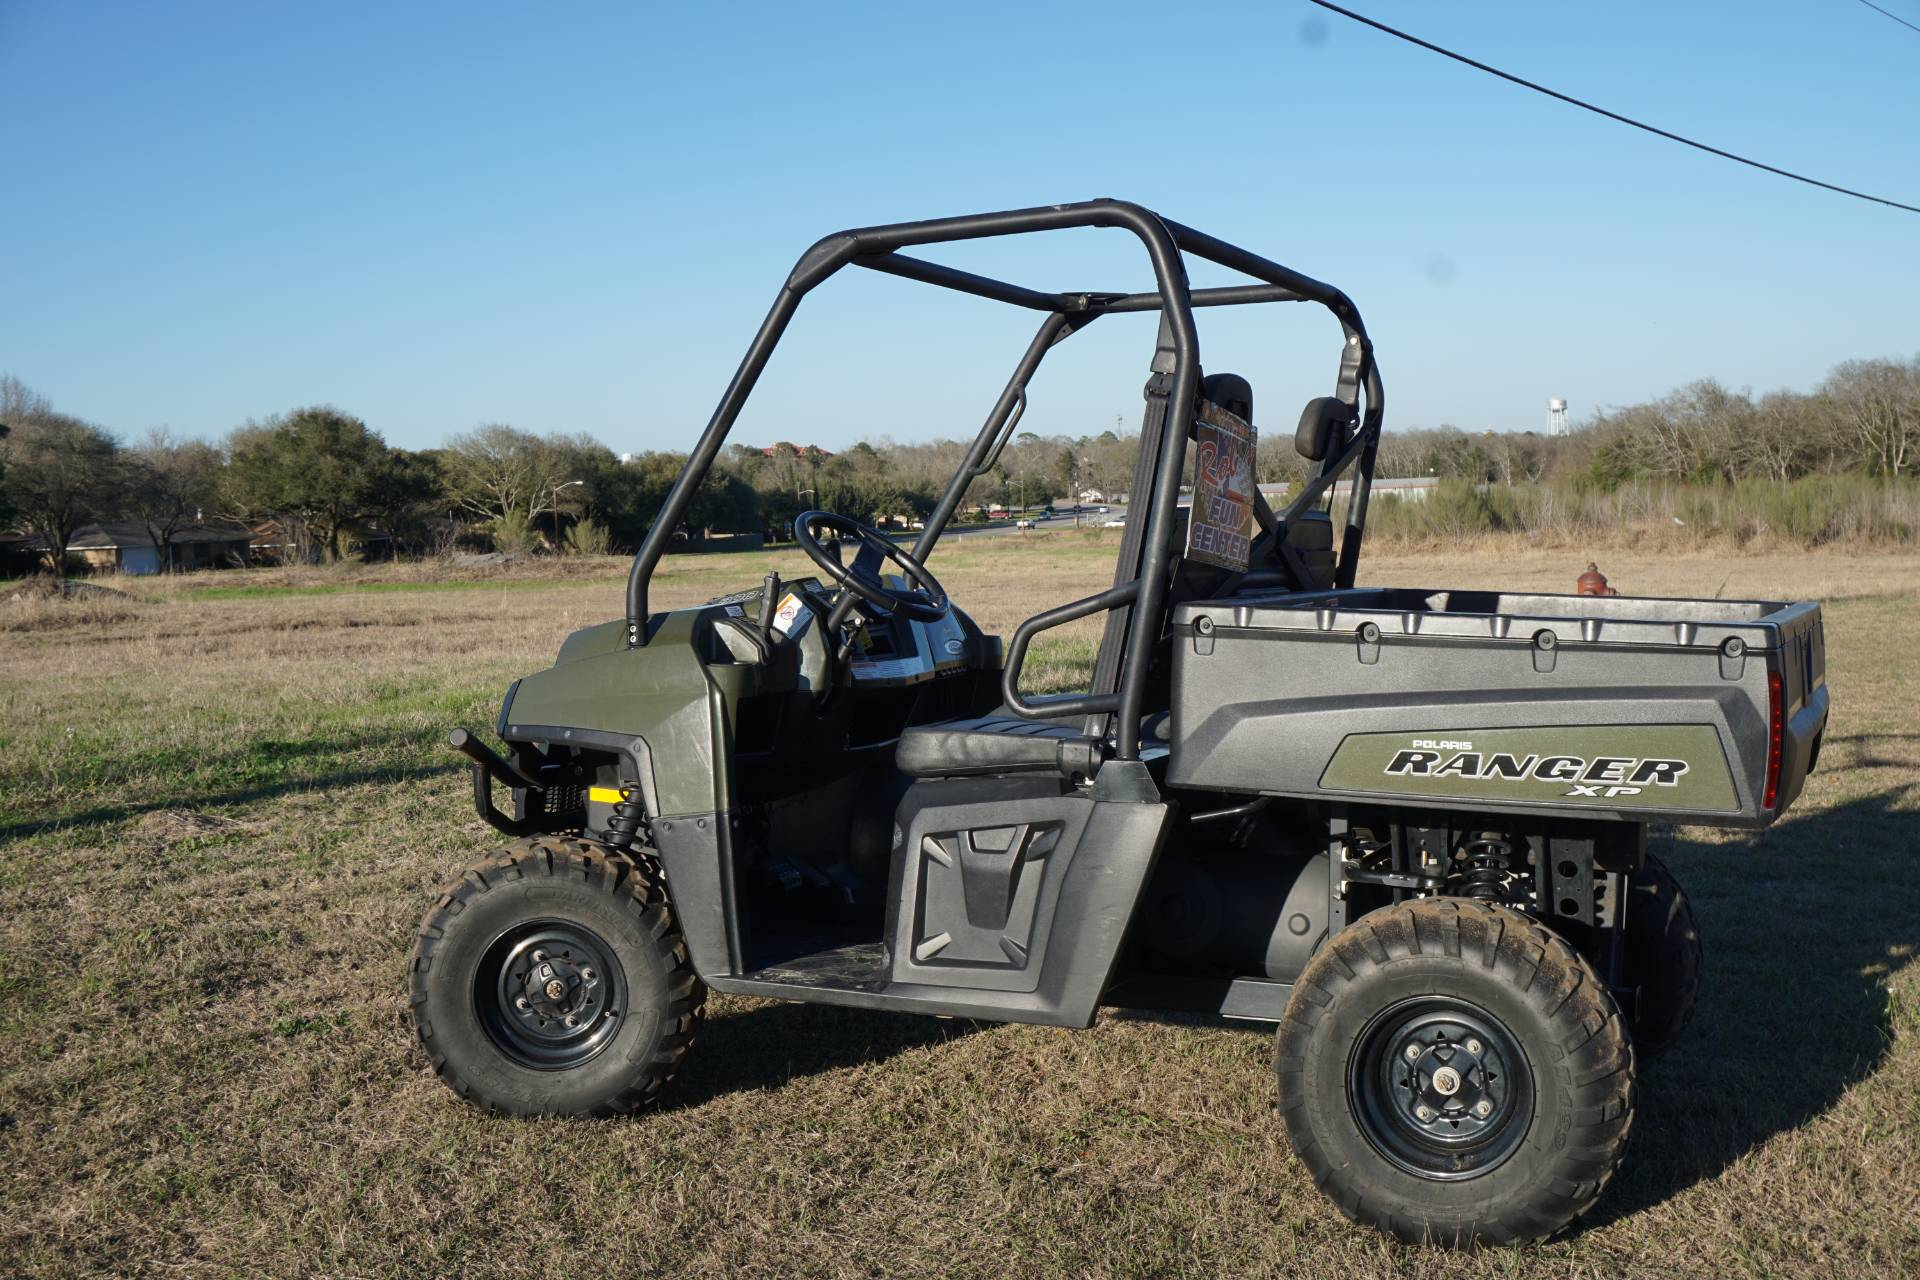 2010 polaris ranger 800 xp service manual